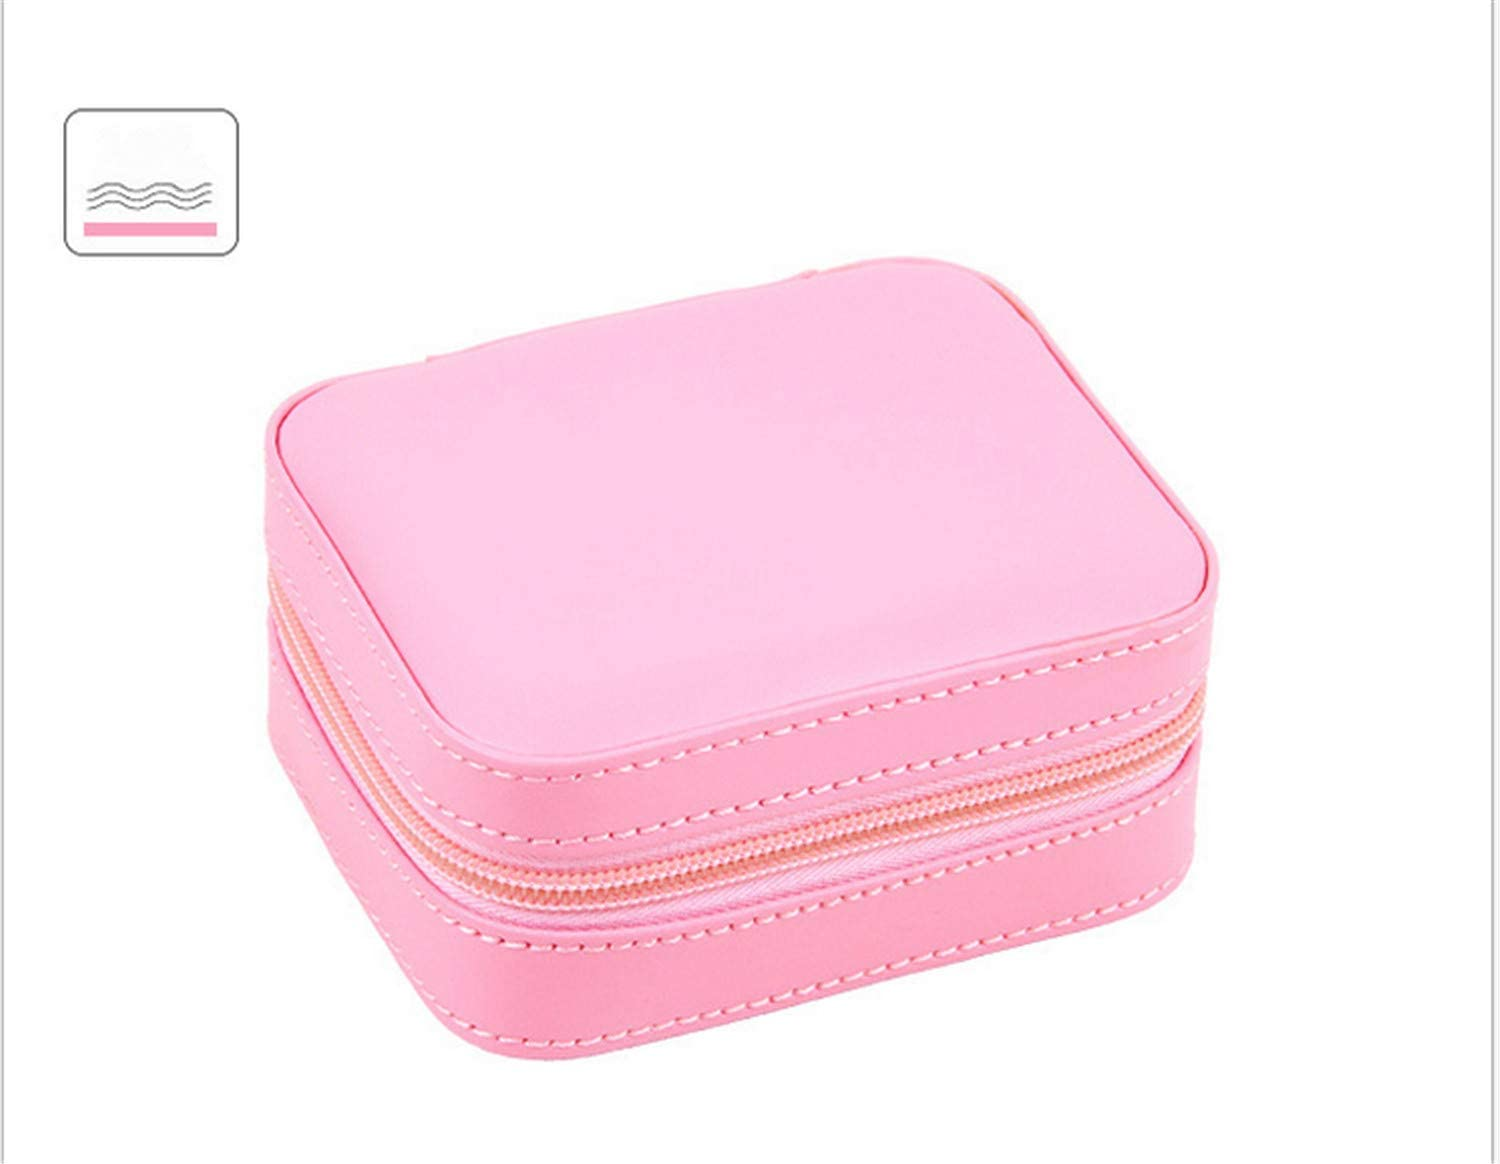 UNIQUE-F Jewelry Storage Box Simple European Artificial Leather Earrings Hair Card Ear Clip Necklace to Clean Up 3 Colors